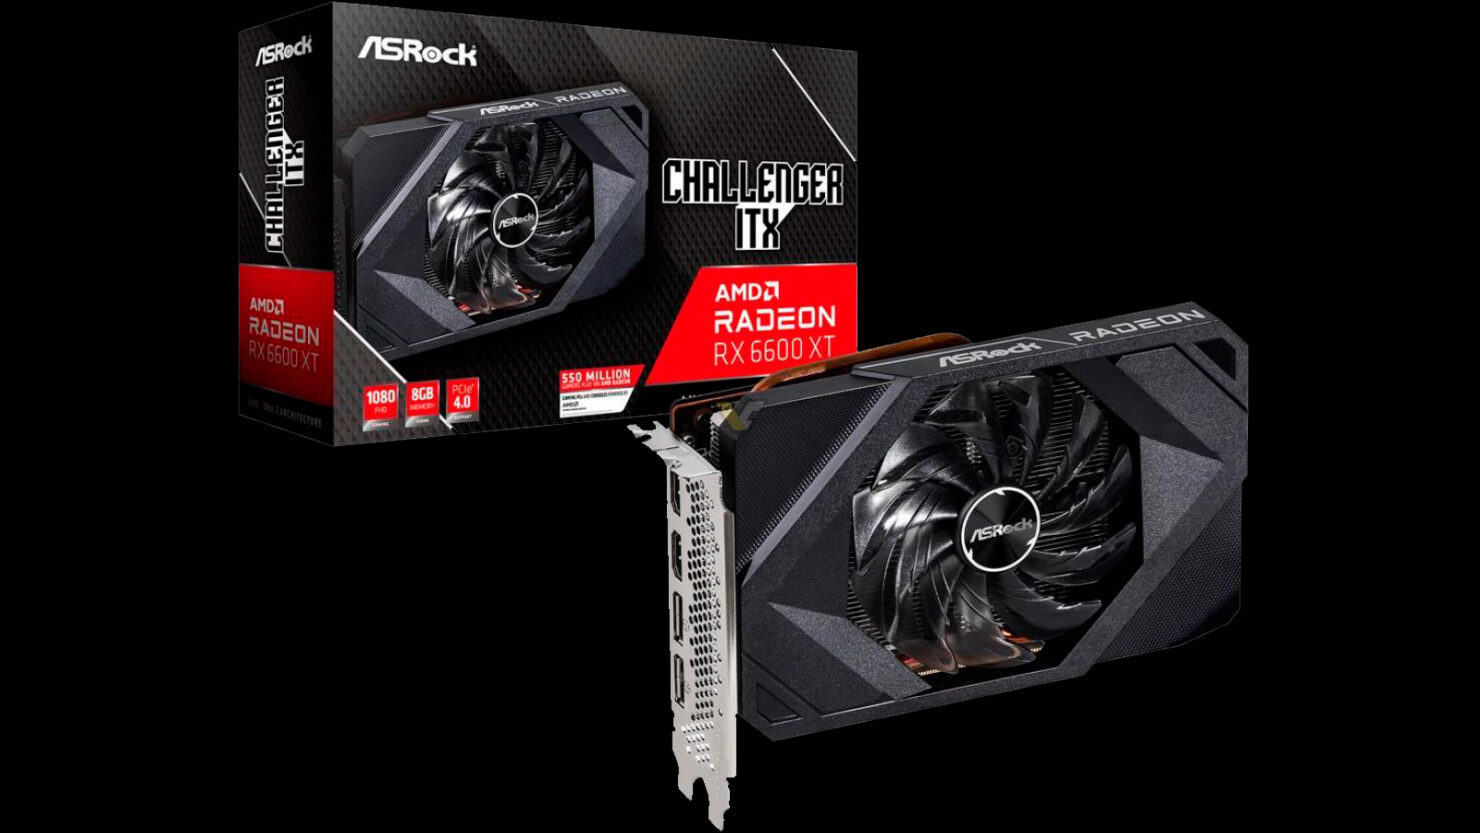 asrock-intros-the-first-mini-itx-graphics-card-powered-by-rdna-2,-the-radeon-rx-6600-xt-challenger-itx